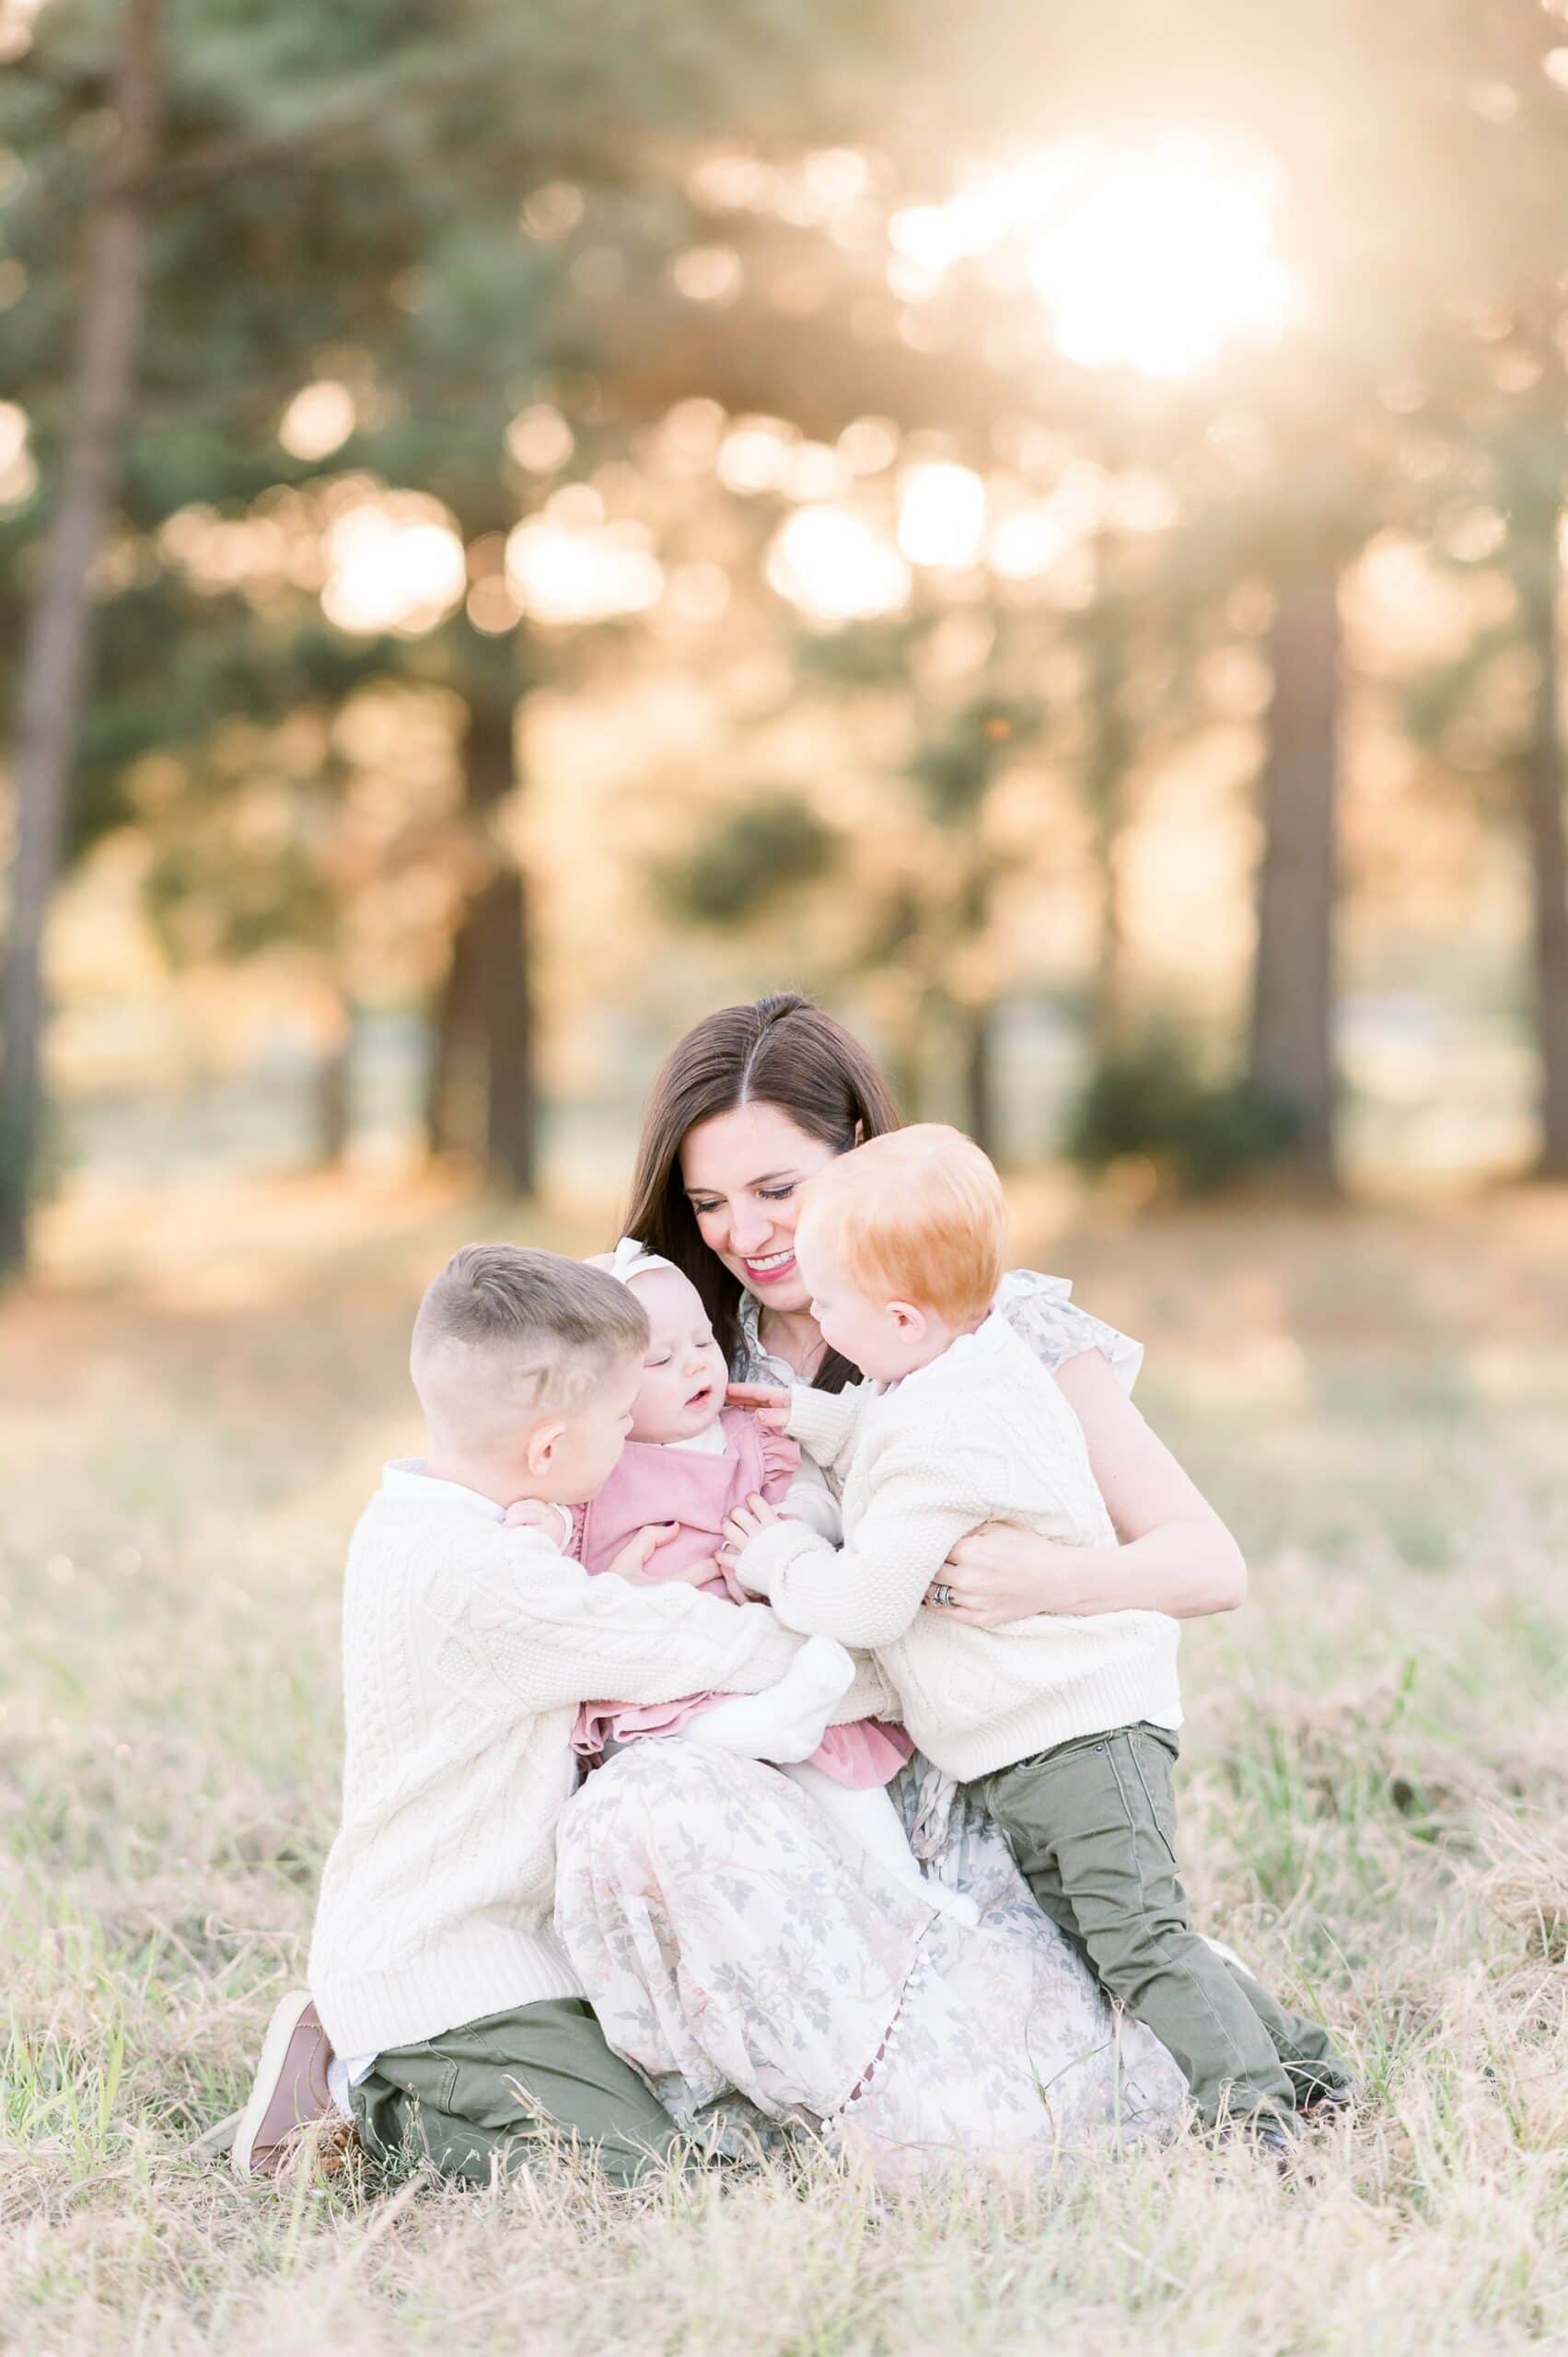 Sweet moment with Mom and three children sitting on the grass during family session. Photo by Aimee Hamilton Photography.